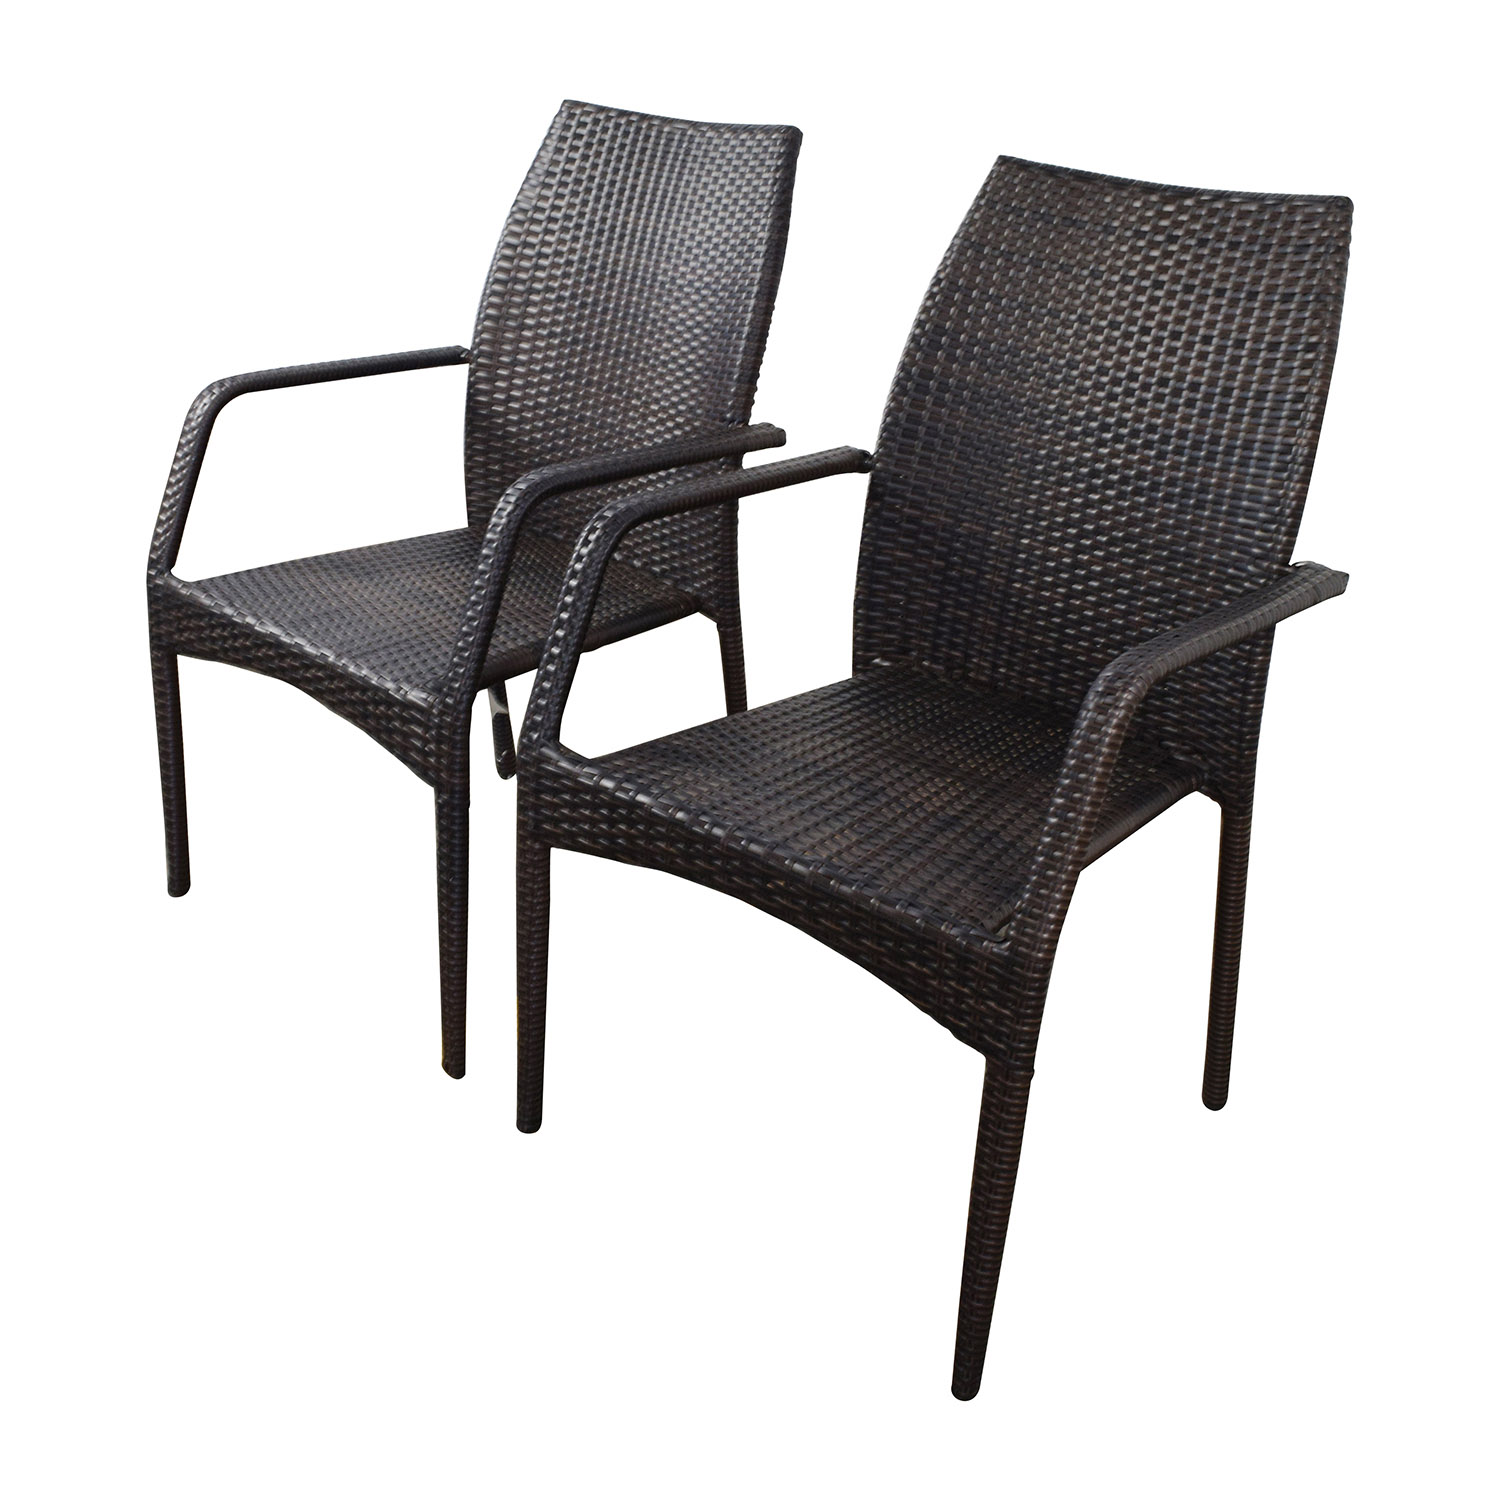 Wicker Outdoor Dining Chairs 85 Off Dark Brown Wicker Outdoor Dining Chairs Chairs